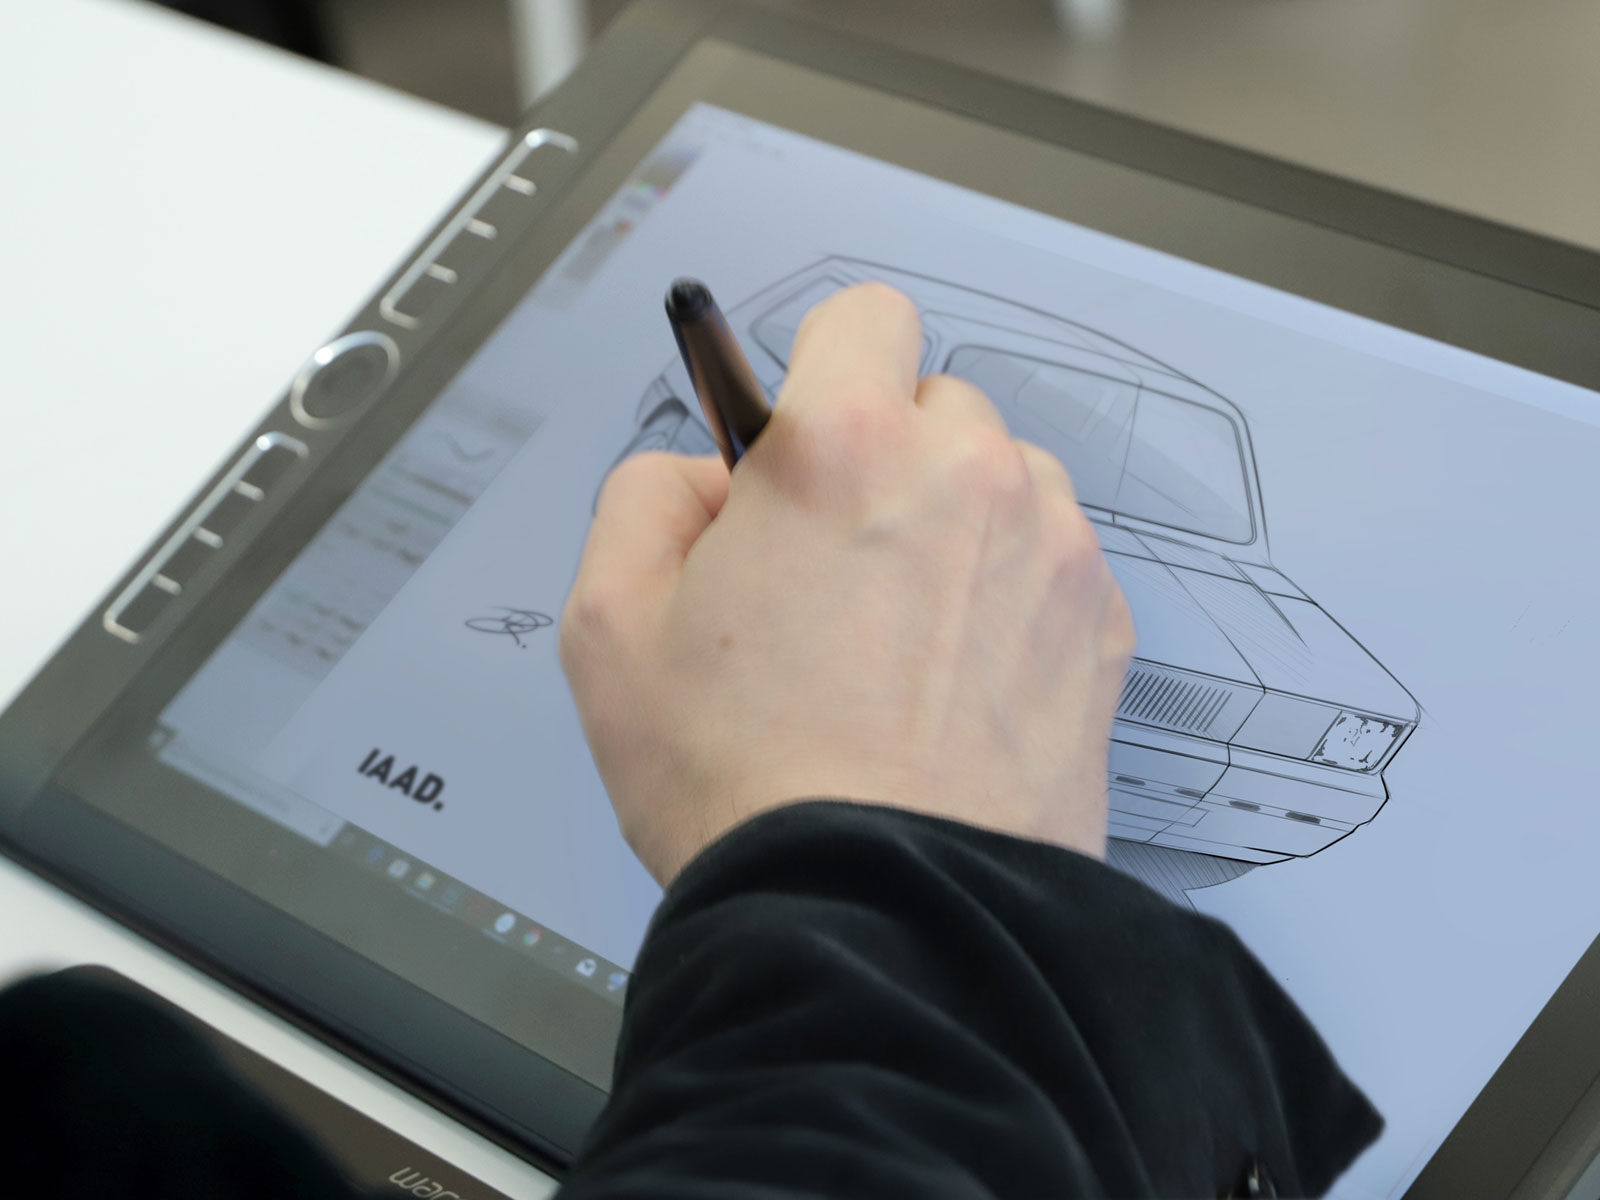 Fiat Panda Design Sketching on Wacom Cintiq at IAAD